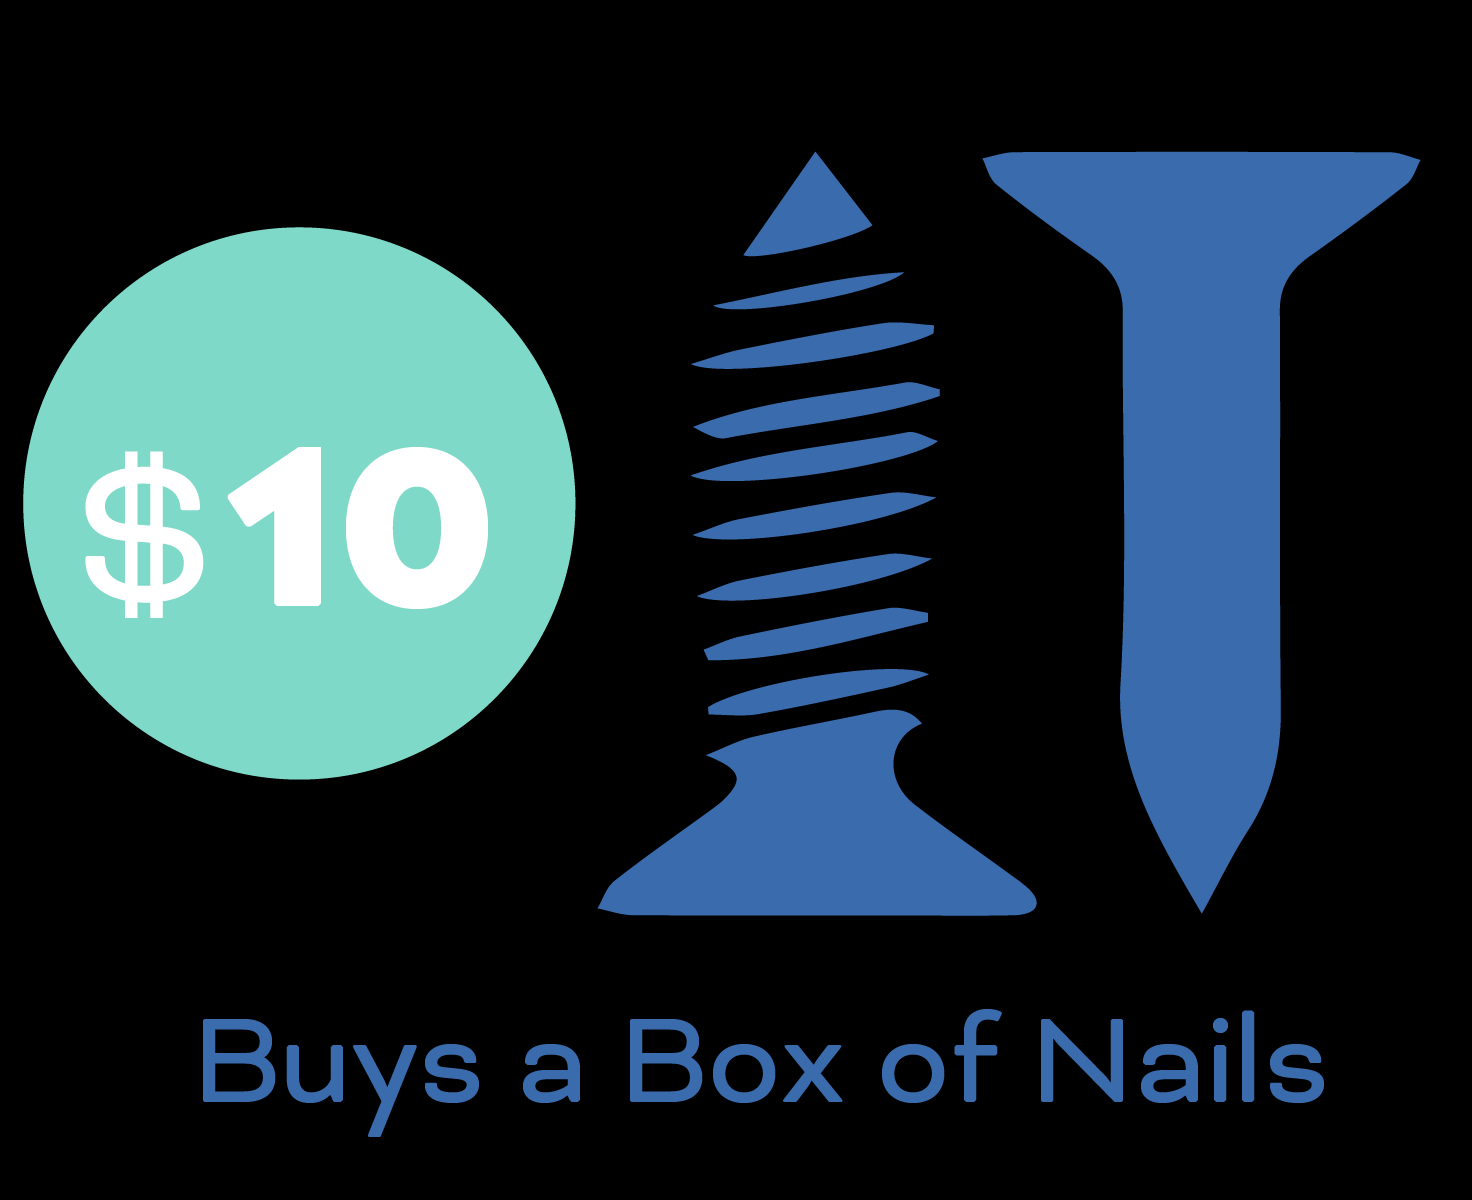 $10 buys a box of nails.